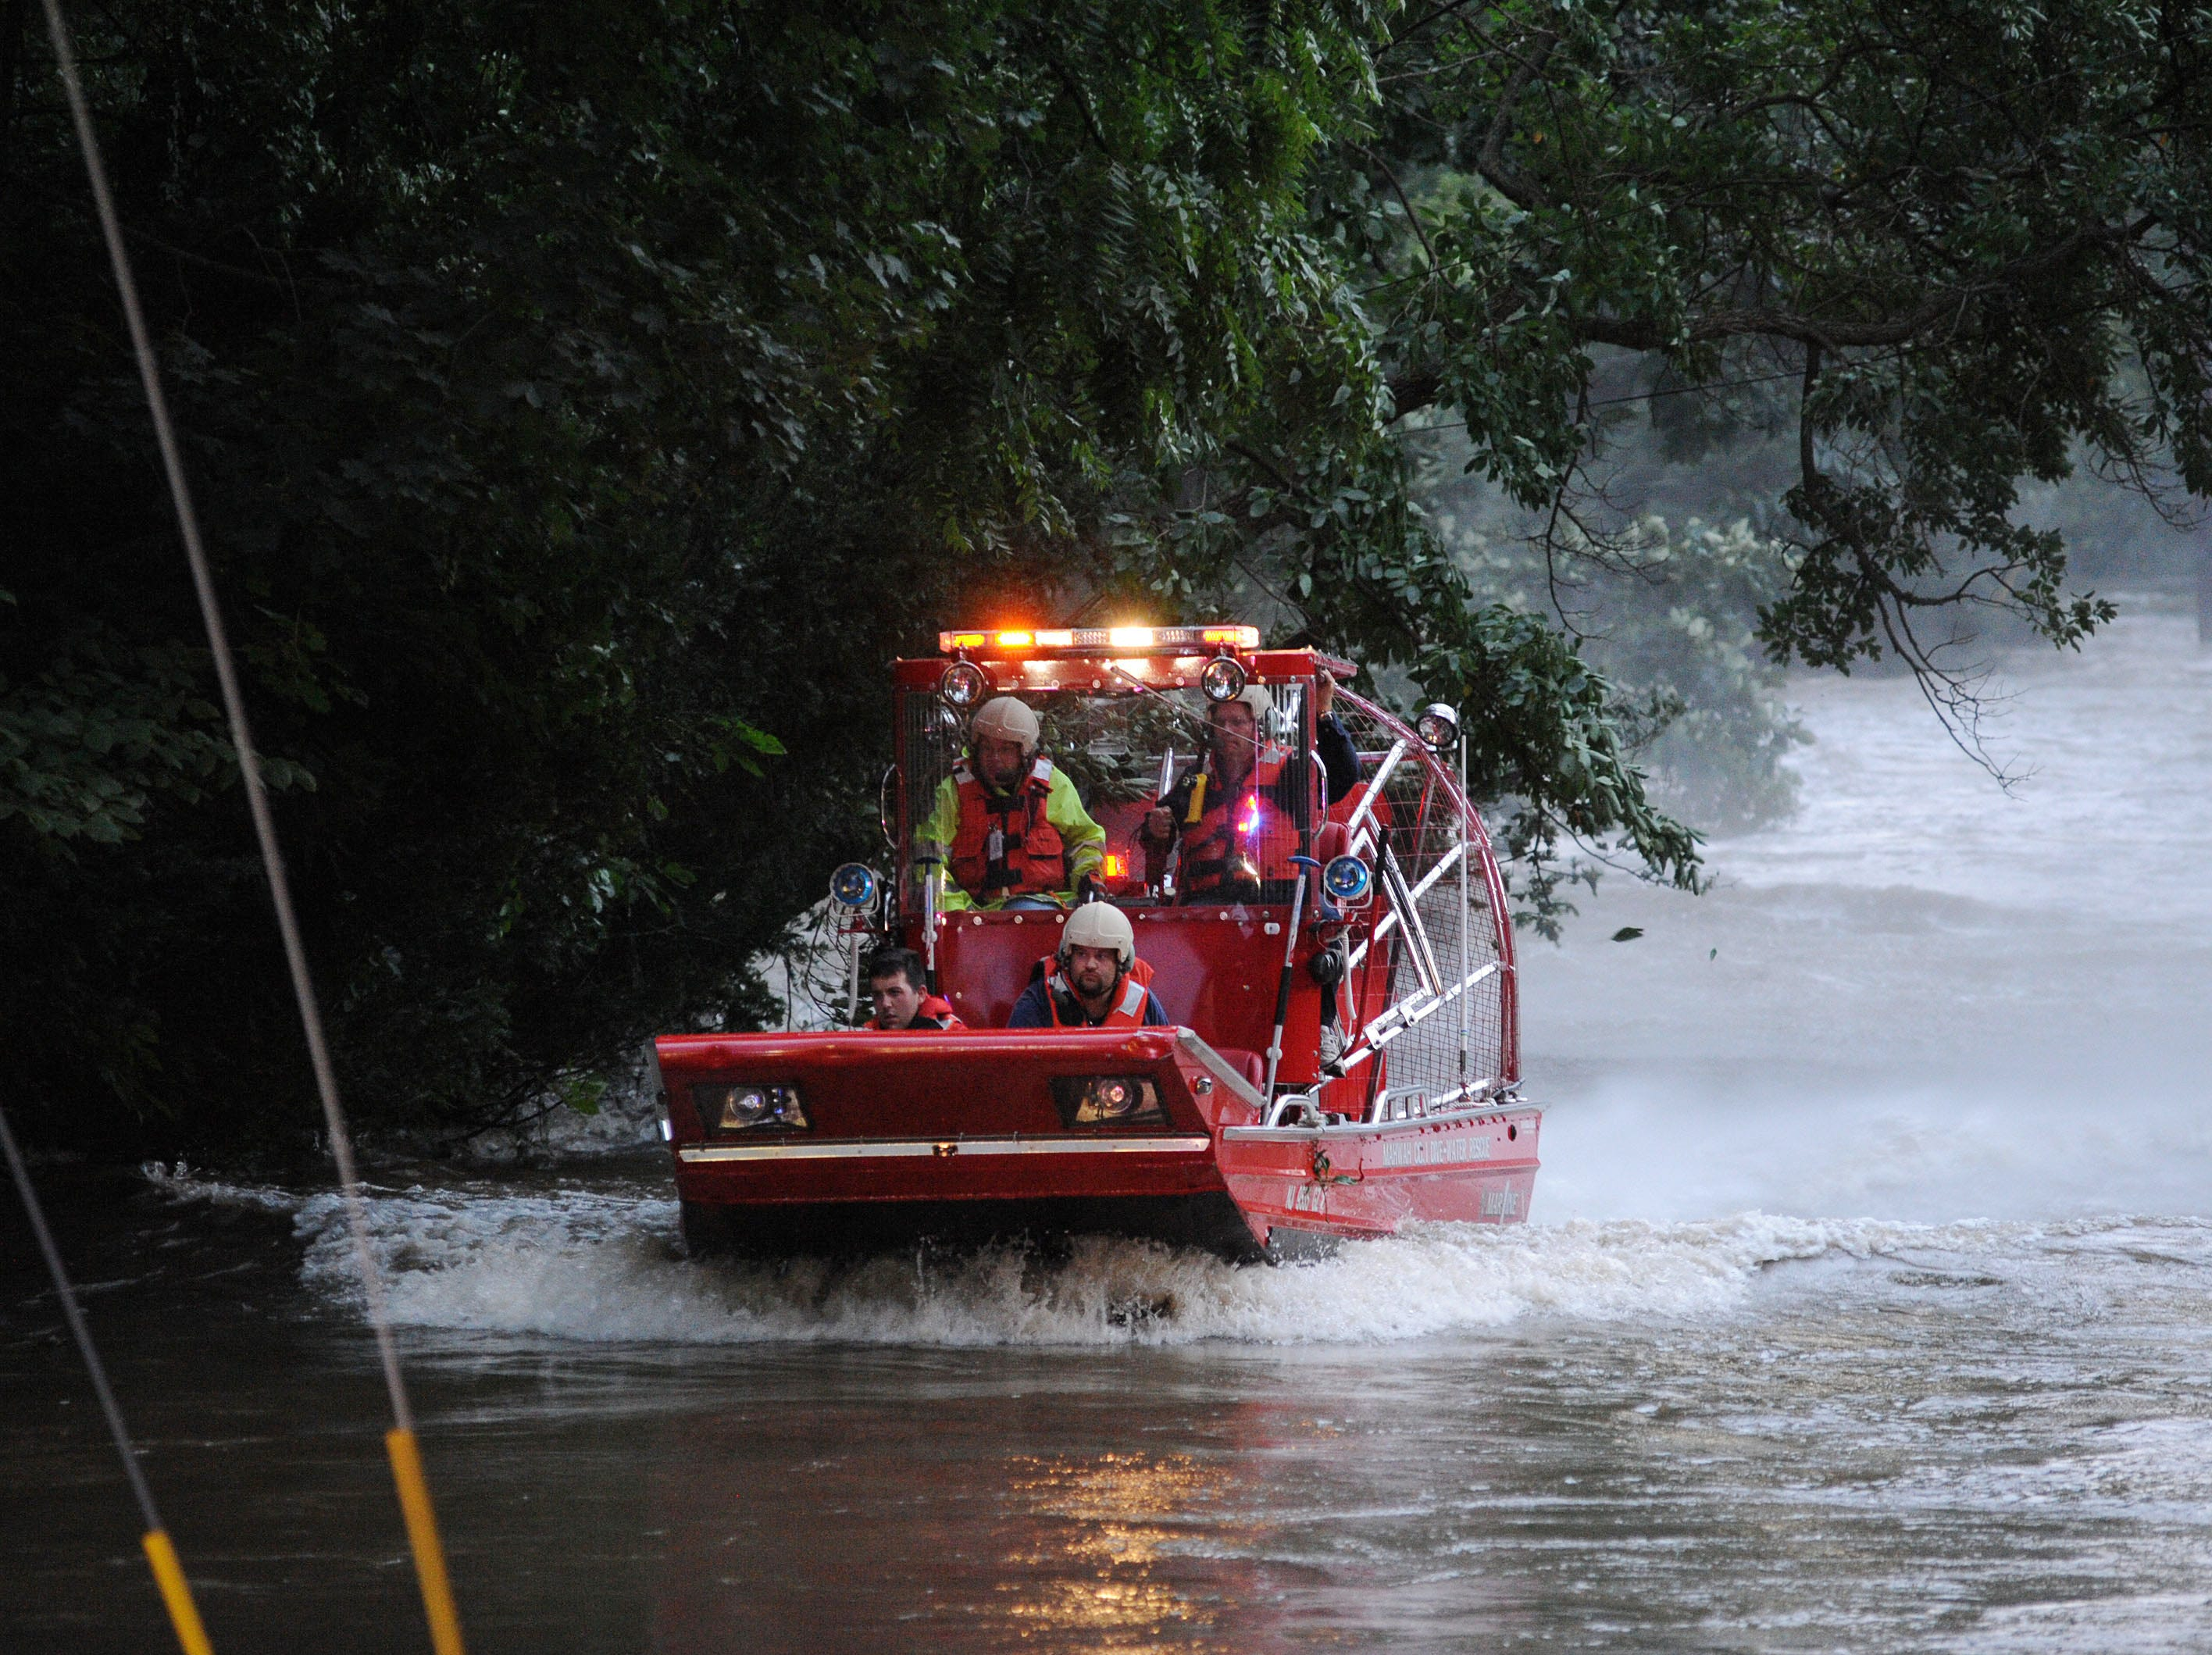 Aug. 28, 2011:  A boat that rescued a man that was up to his neck in rapidly moving water while holding onto some trees for about an hour on Lakeshore Drive in Oakland. The flood waters were caused by flooding from Hurricane Irene mixing with already high rivers.